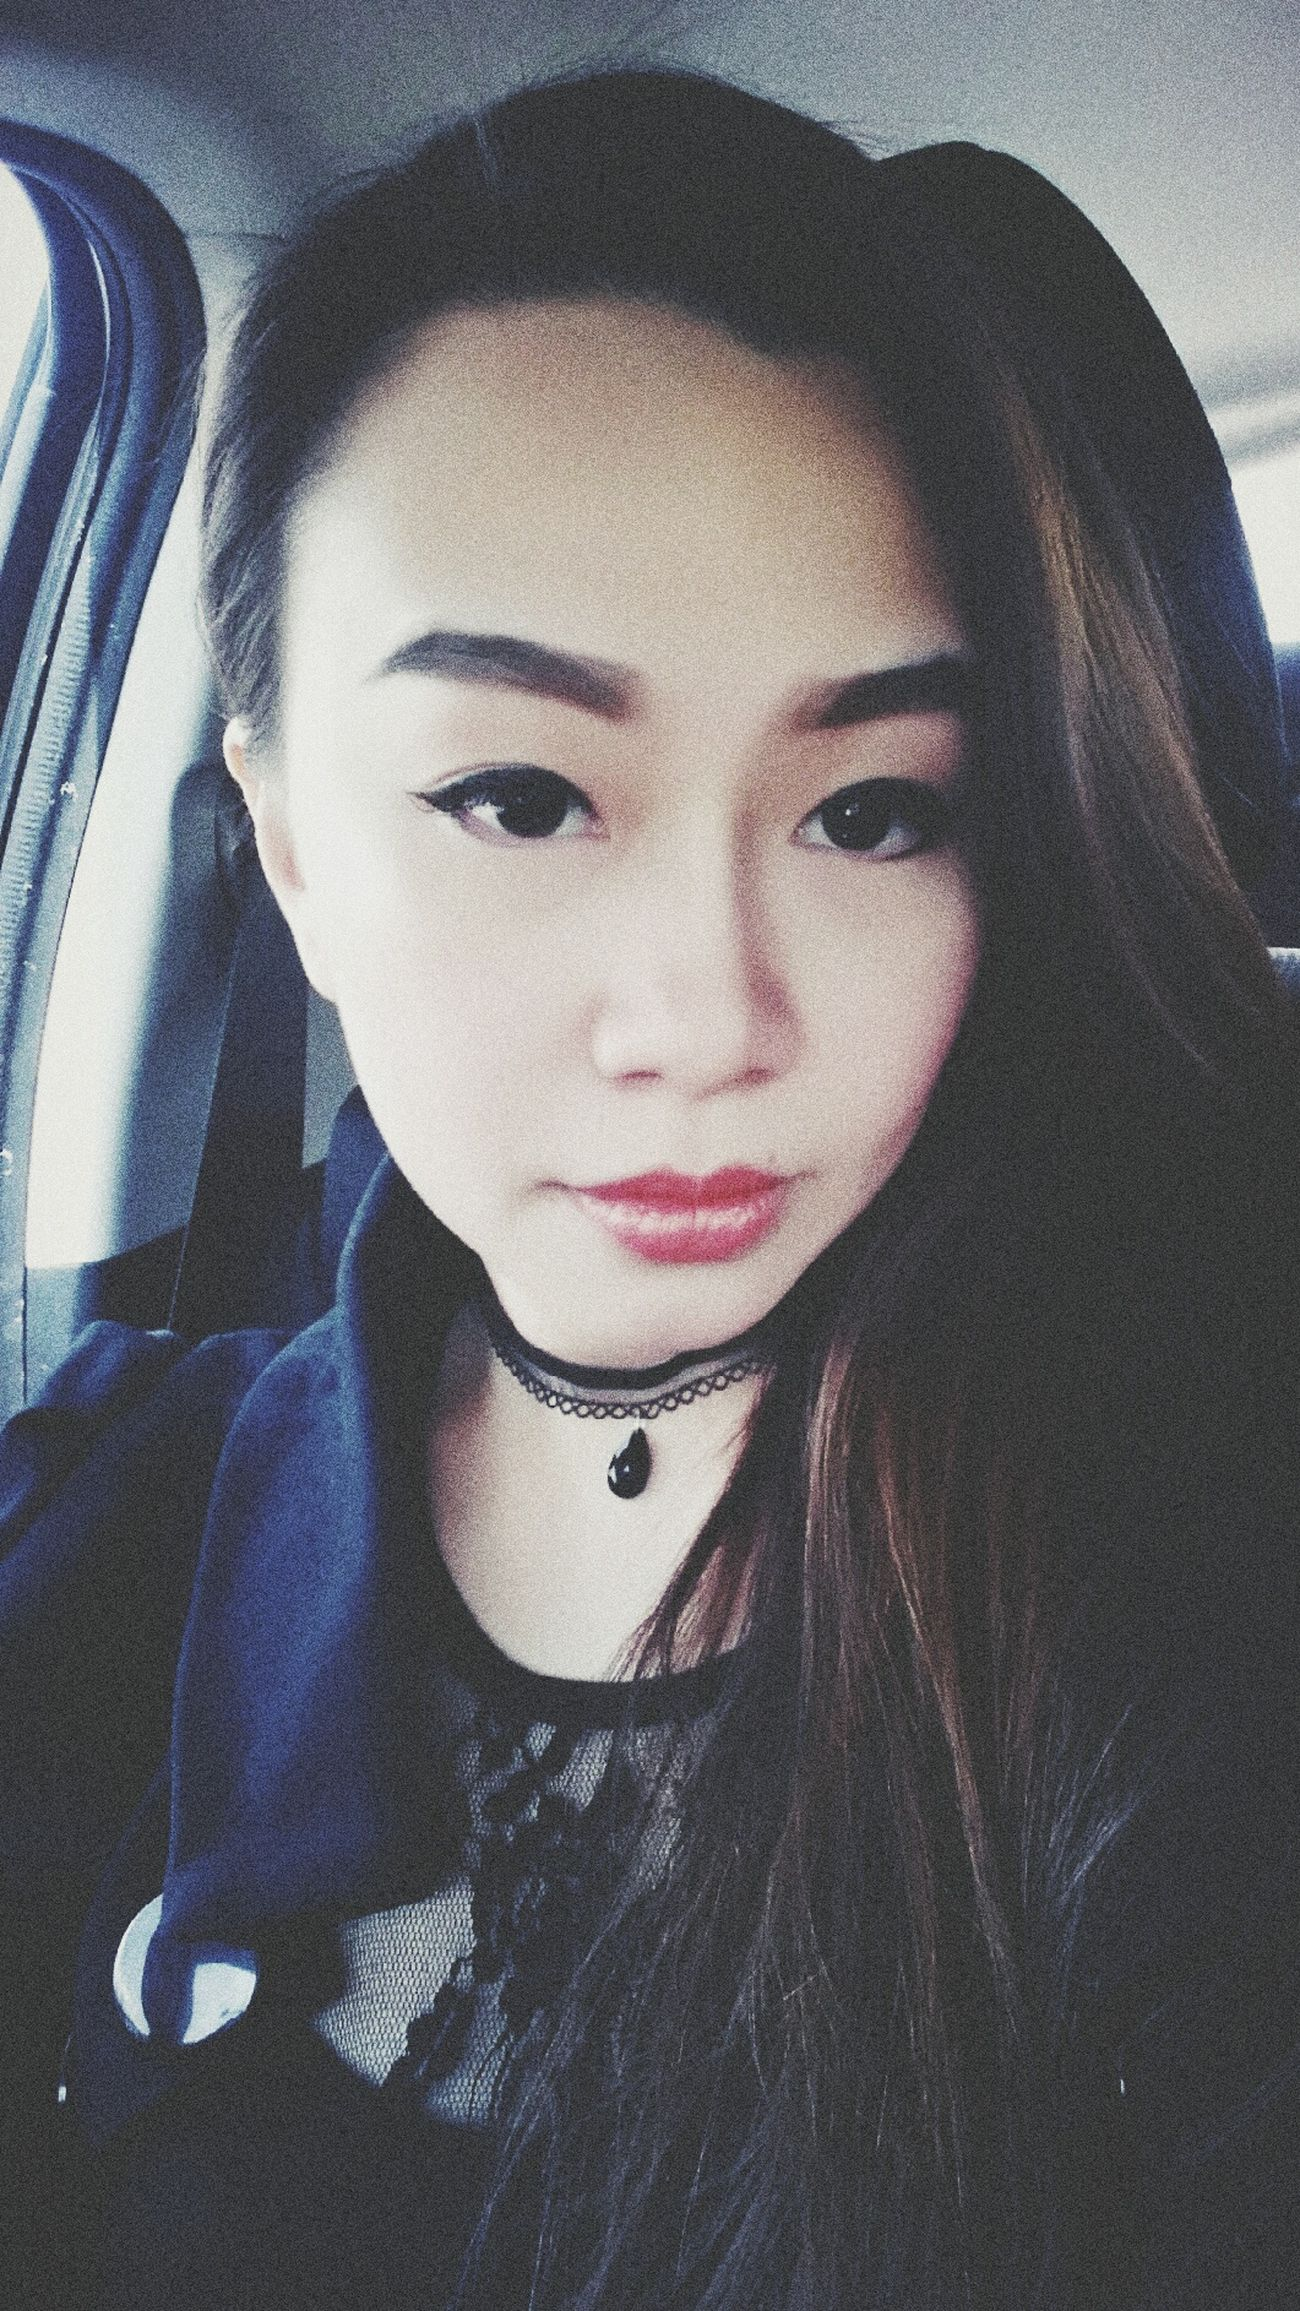 Black My Fav Color Gothic Beauty  Working Girl Officelady Faces Of EyeEm Asian Beauty Sales Life Sexylips